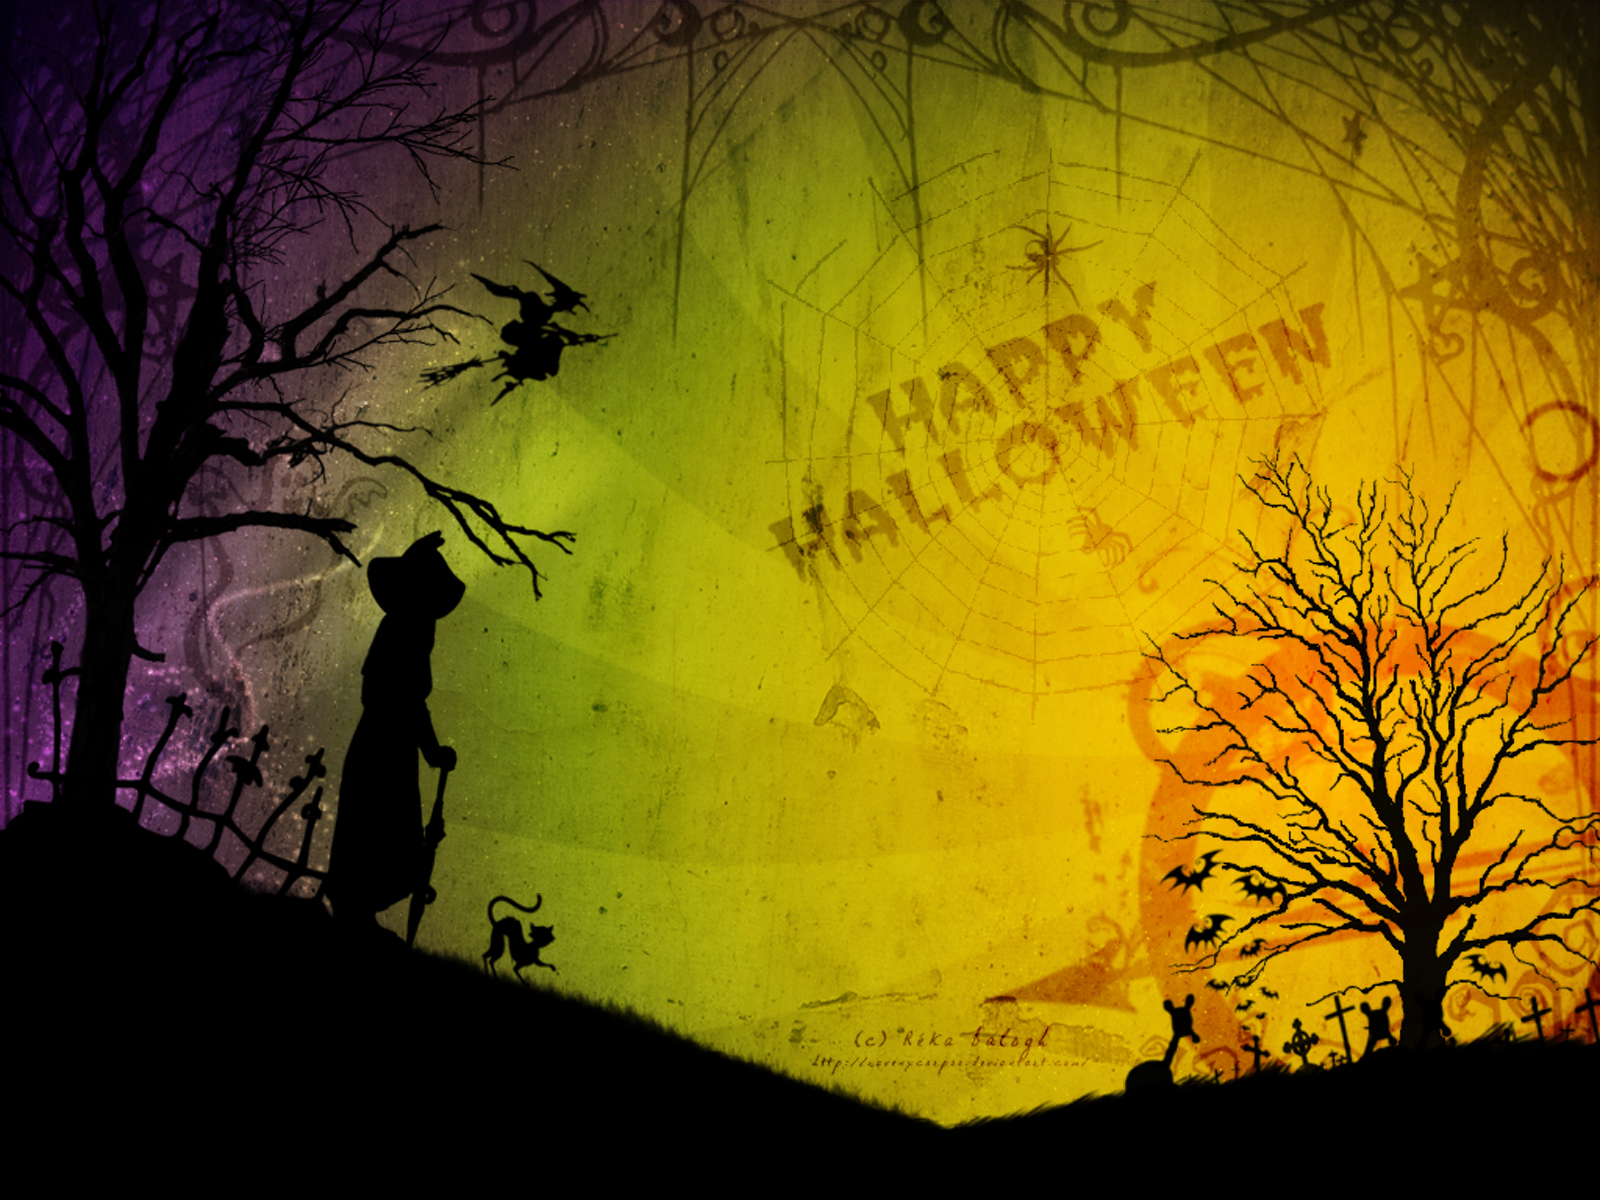 30 Scary Halloween Desktop Wallpapers Best Design 1600x1200